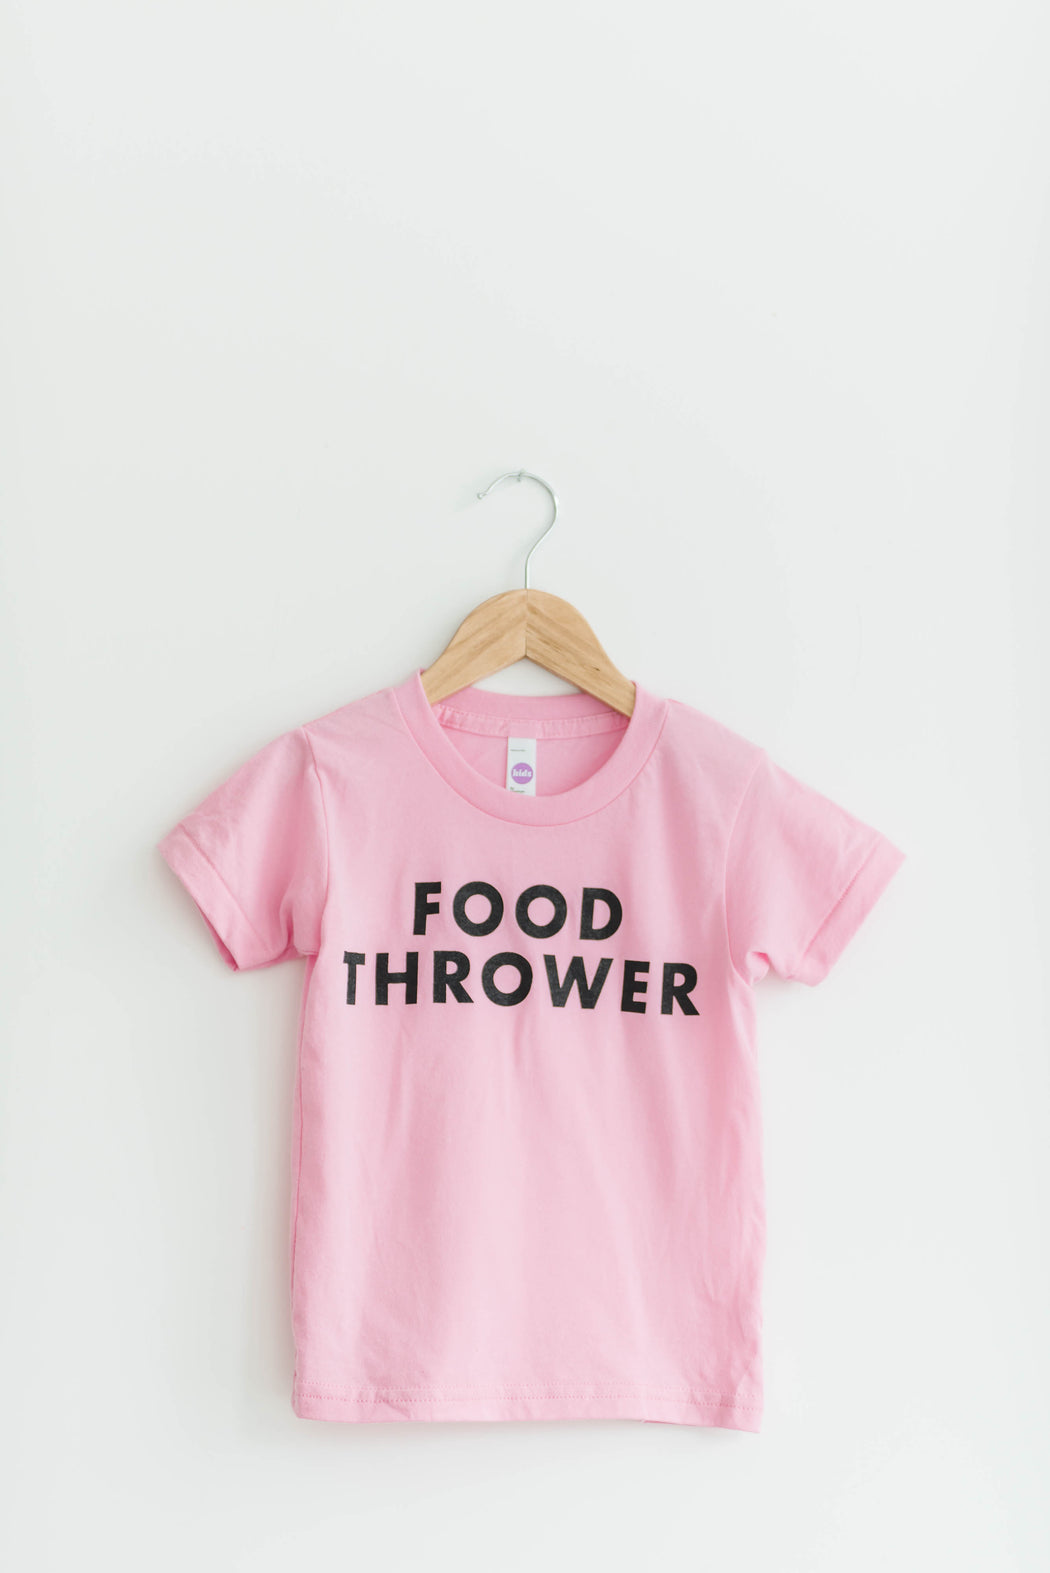 Food Thrower (Pink)